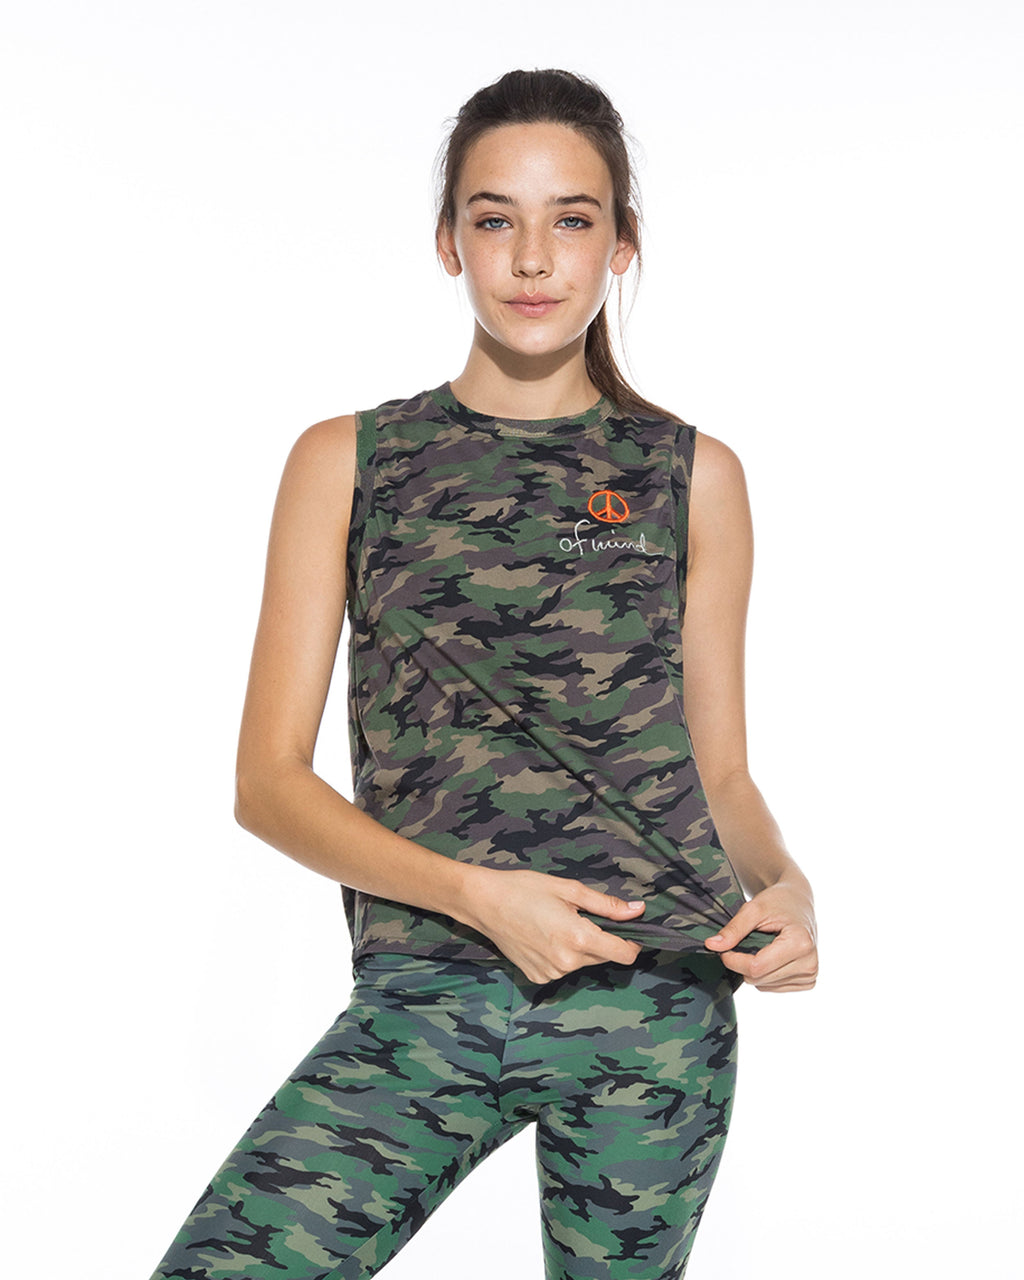 CT18600 - CAMO MUSCLE T-SHIRT - tops - shirts - This lightweight tee is crafted from 100% cotton. Designed in a classic muscle tee silhouette in classic camoflauge print in blush or green. Add 1 line break Stylist tip: Dress this top up by pairing with black denim.